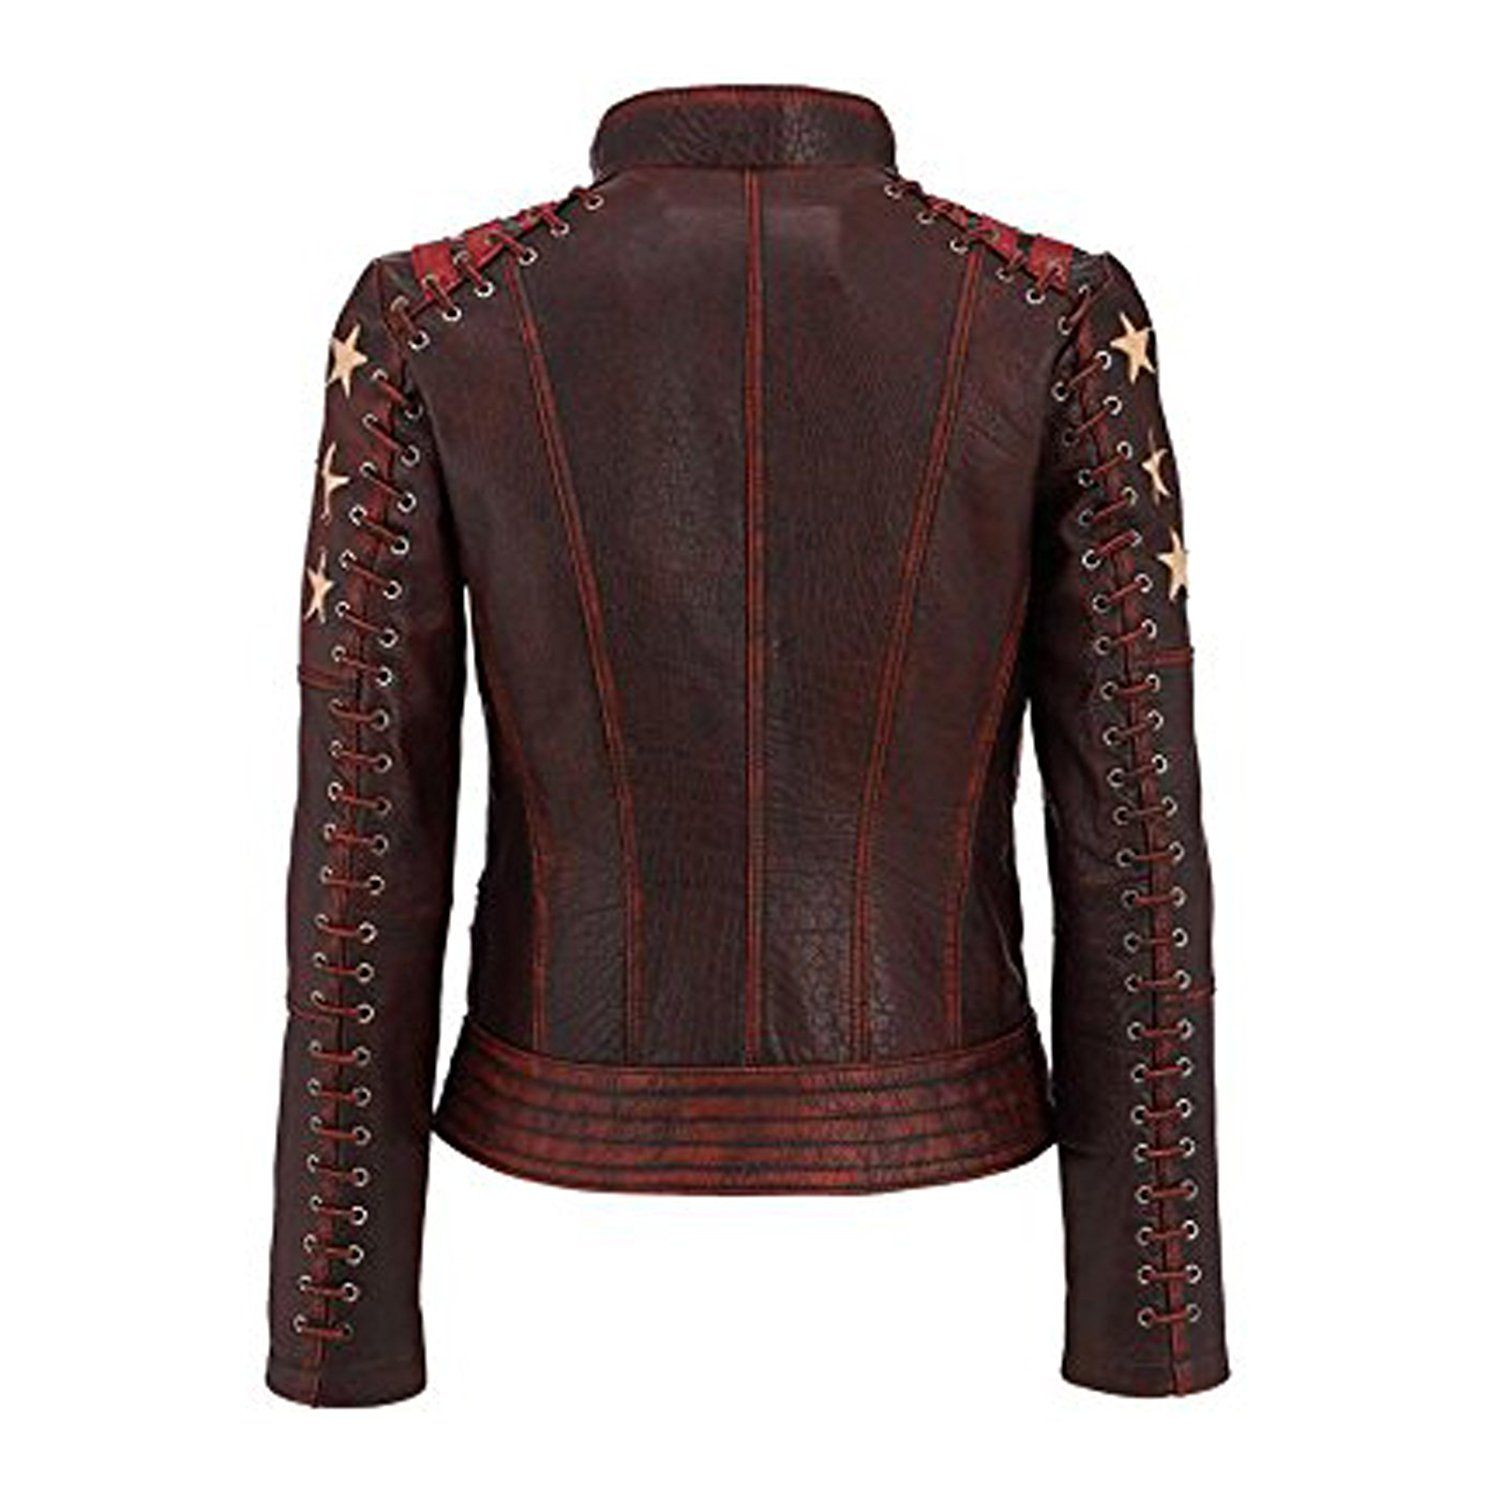 Pin on Women's OX Blood Cafe Racer Leather Jacket TOP SELLER